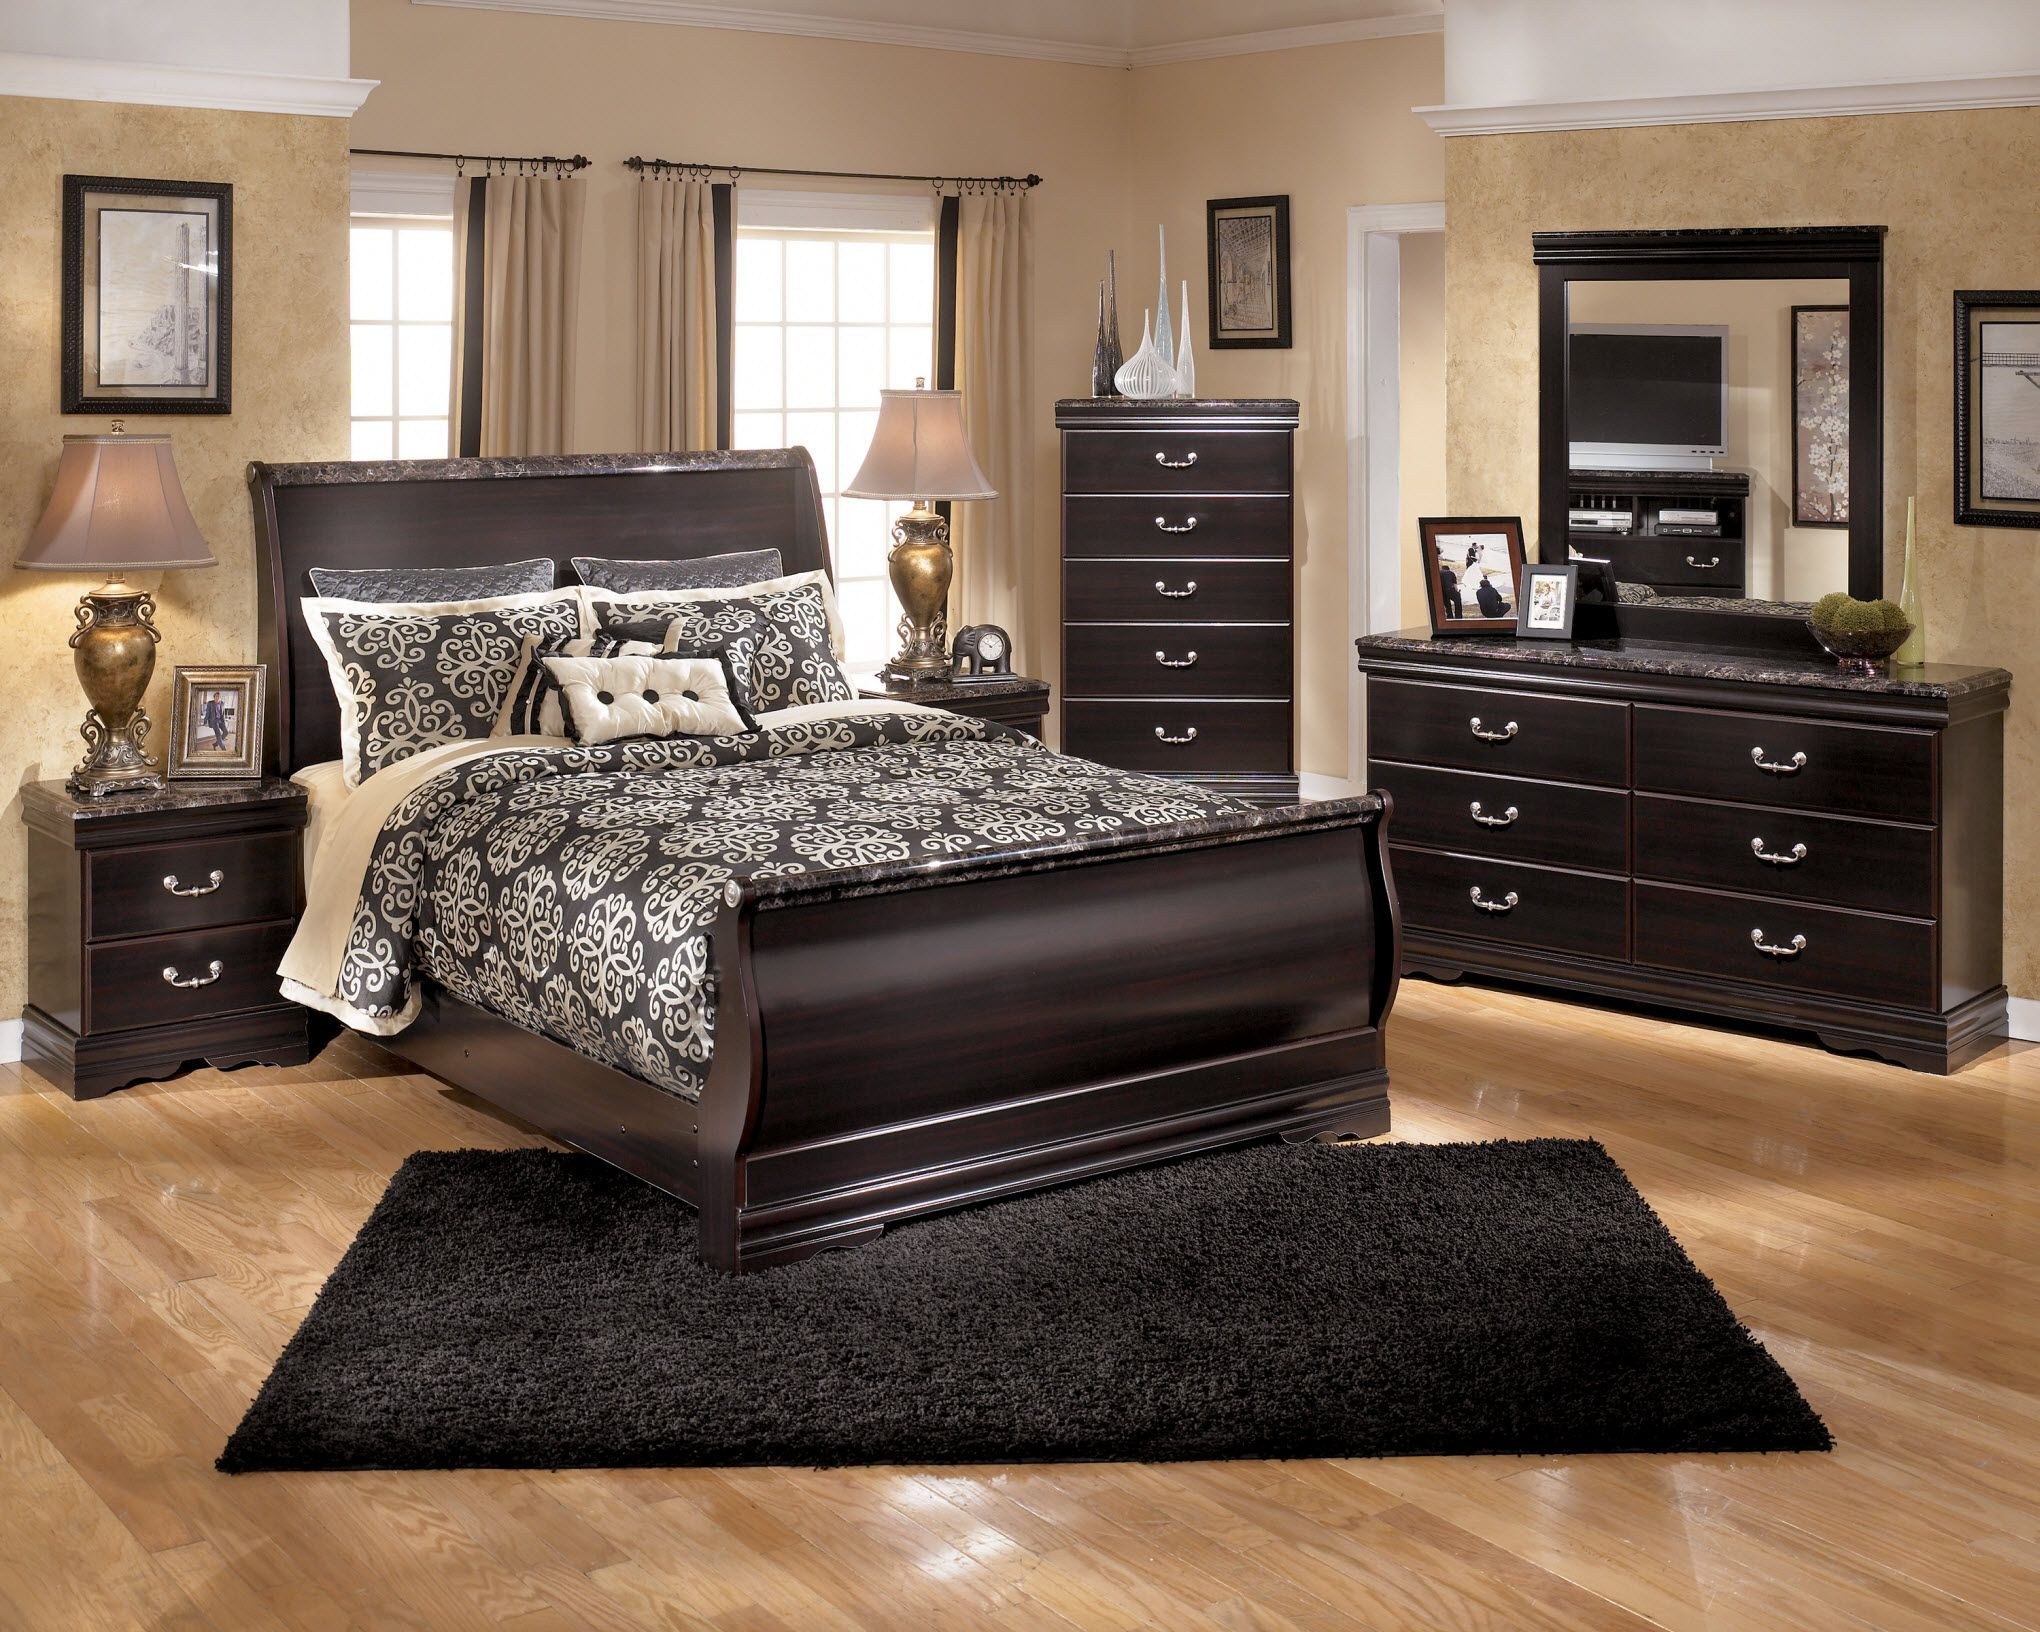 30 Amazing Image Of Bedroom Furniture Sets Marble Top Set At S